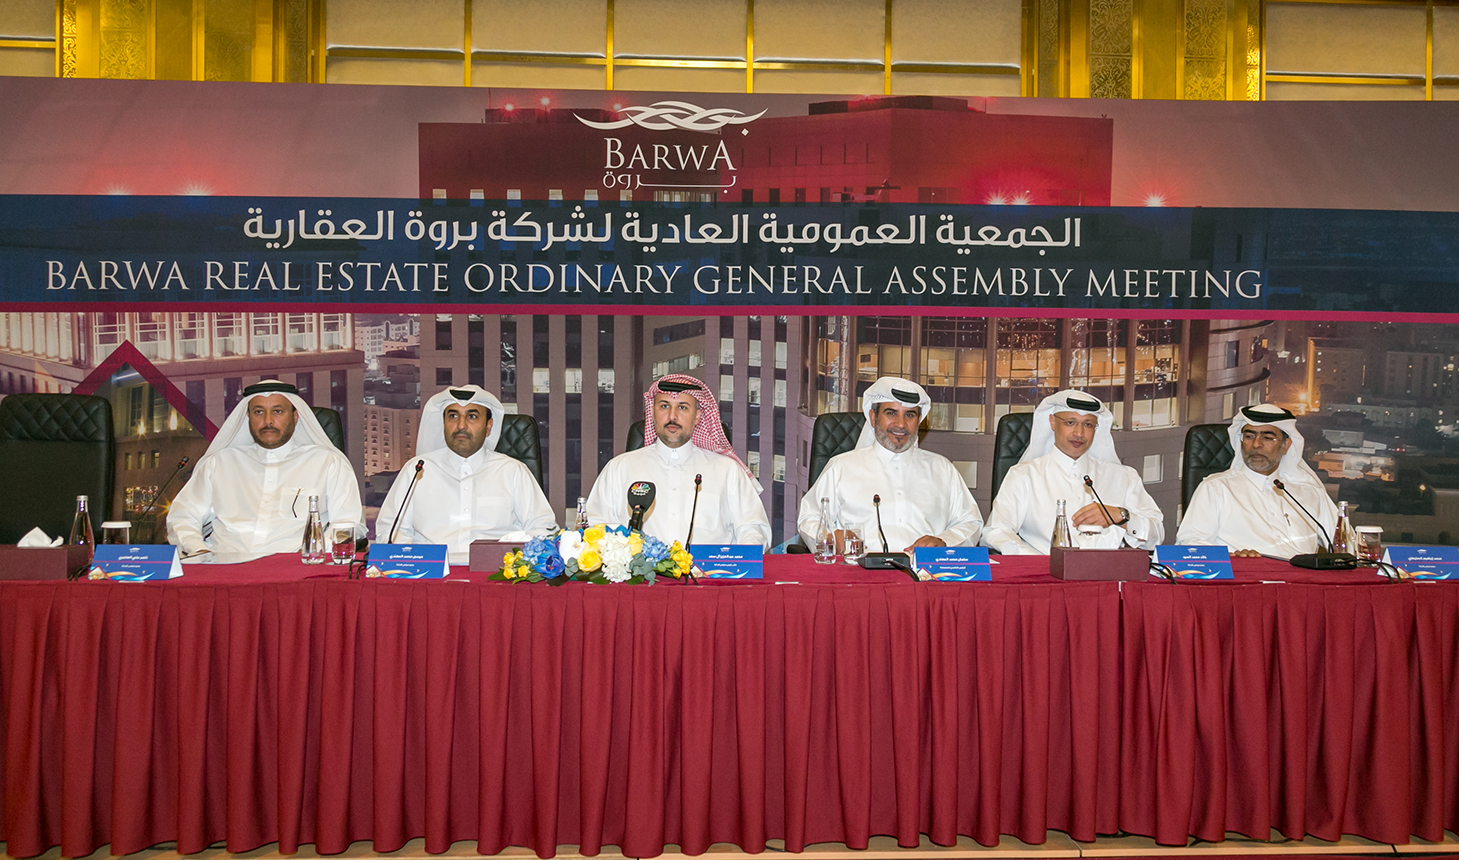 Barwa Annual Ordinary General Assembly Meeting